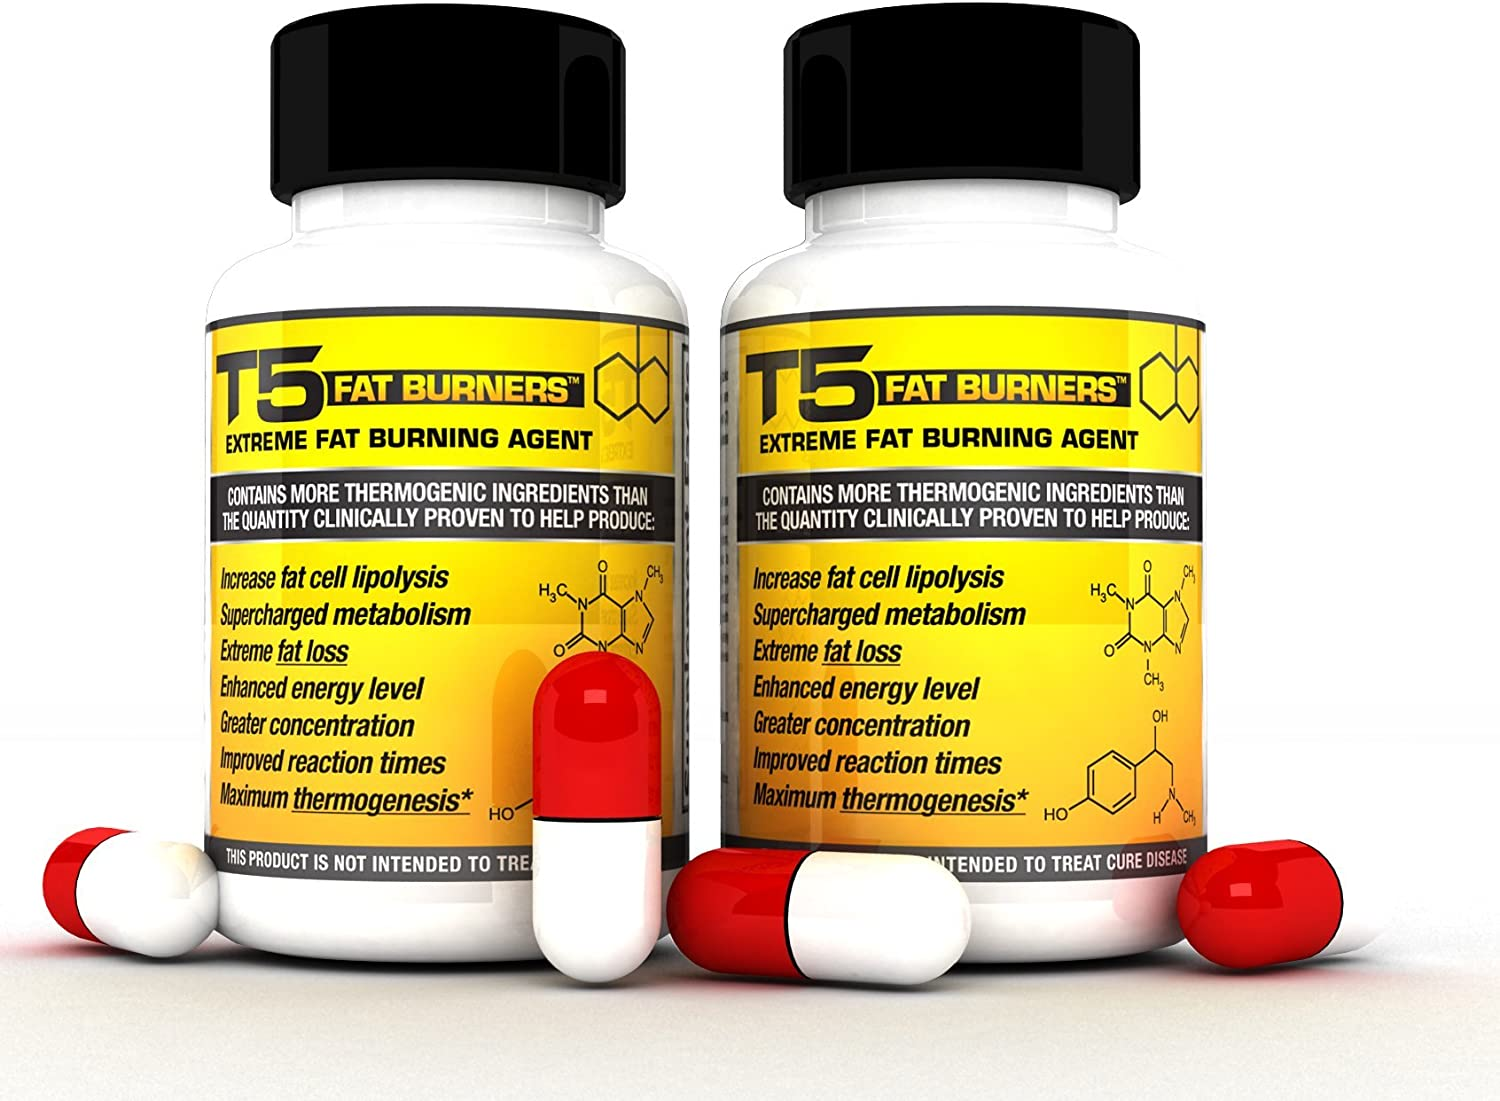 Biogen Health Science x2 Original T5 Fat Burners Super Strength Slimming Weight Loss Diet Pills 2 Month Supply